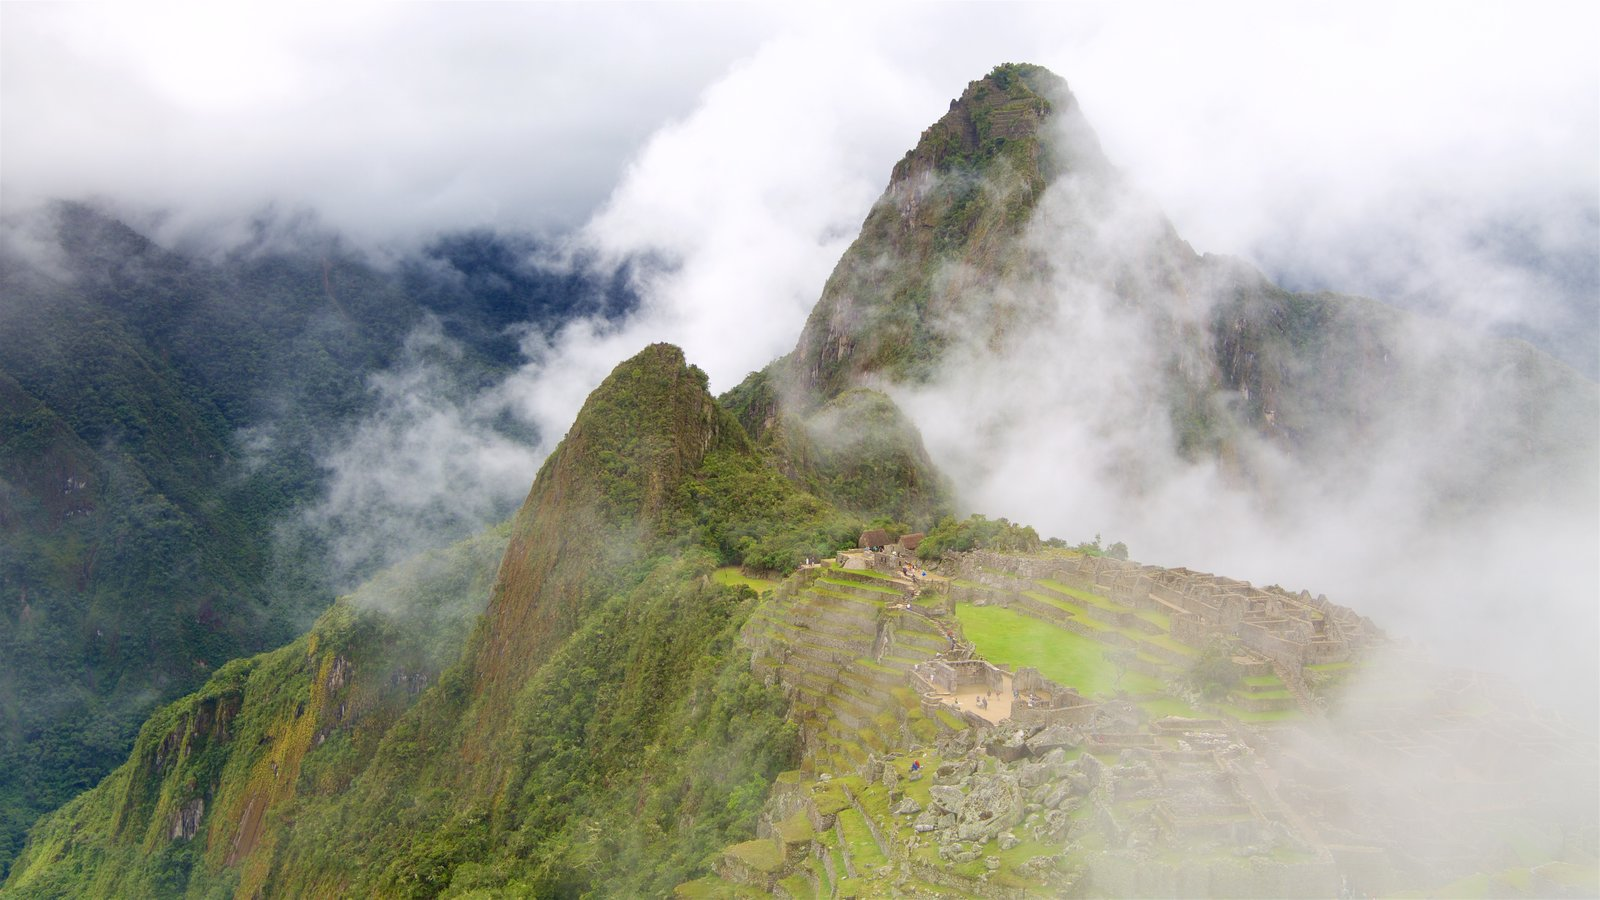 Huayna Picchu featuring mist or fog, mountains and tranquil scenes